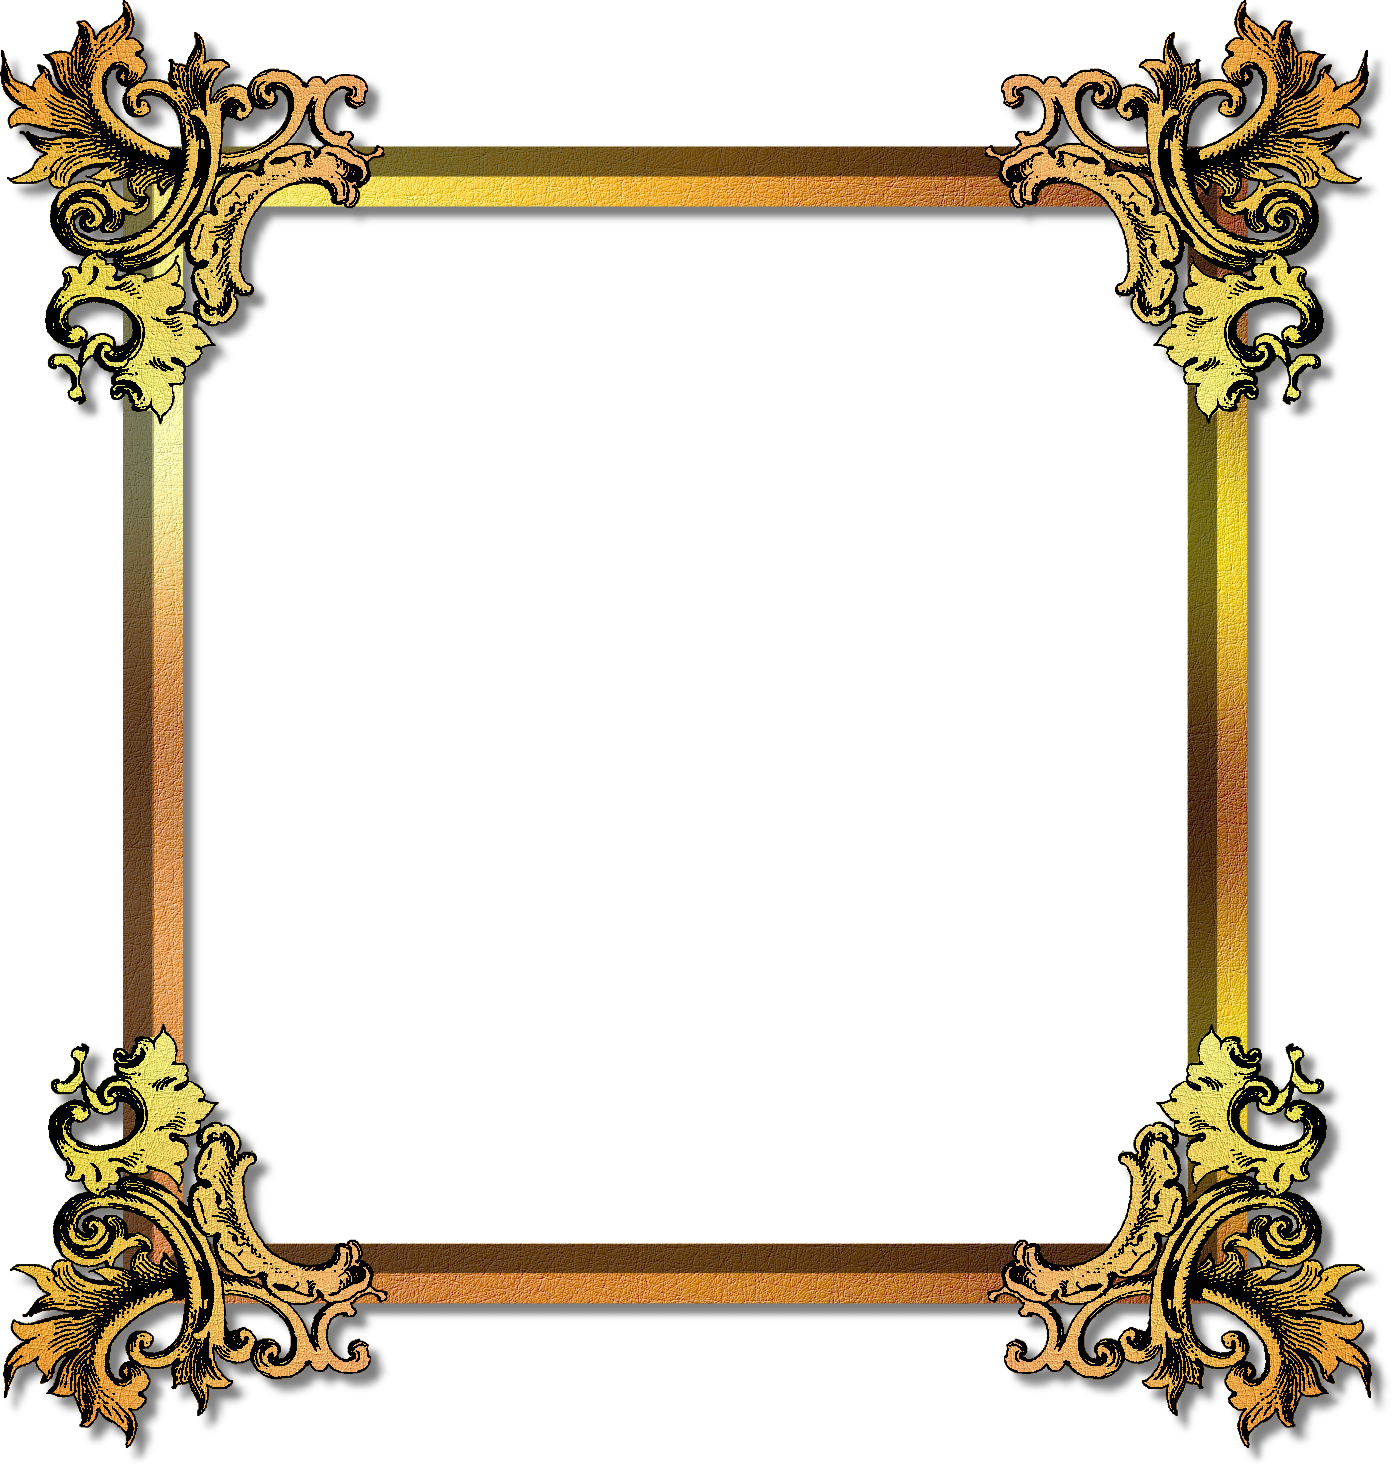 gold, photo editing material new frames #24156